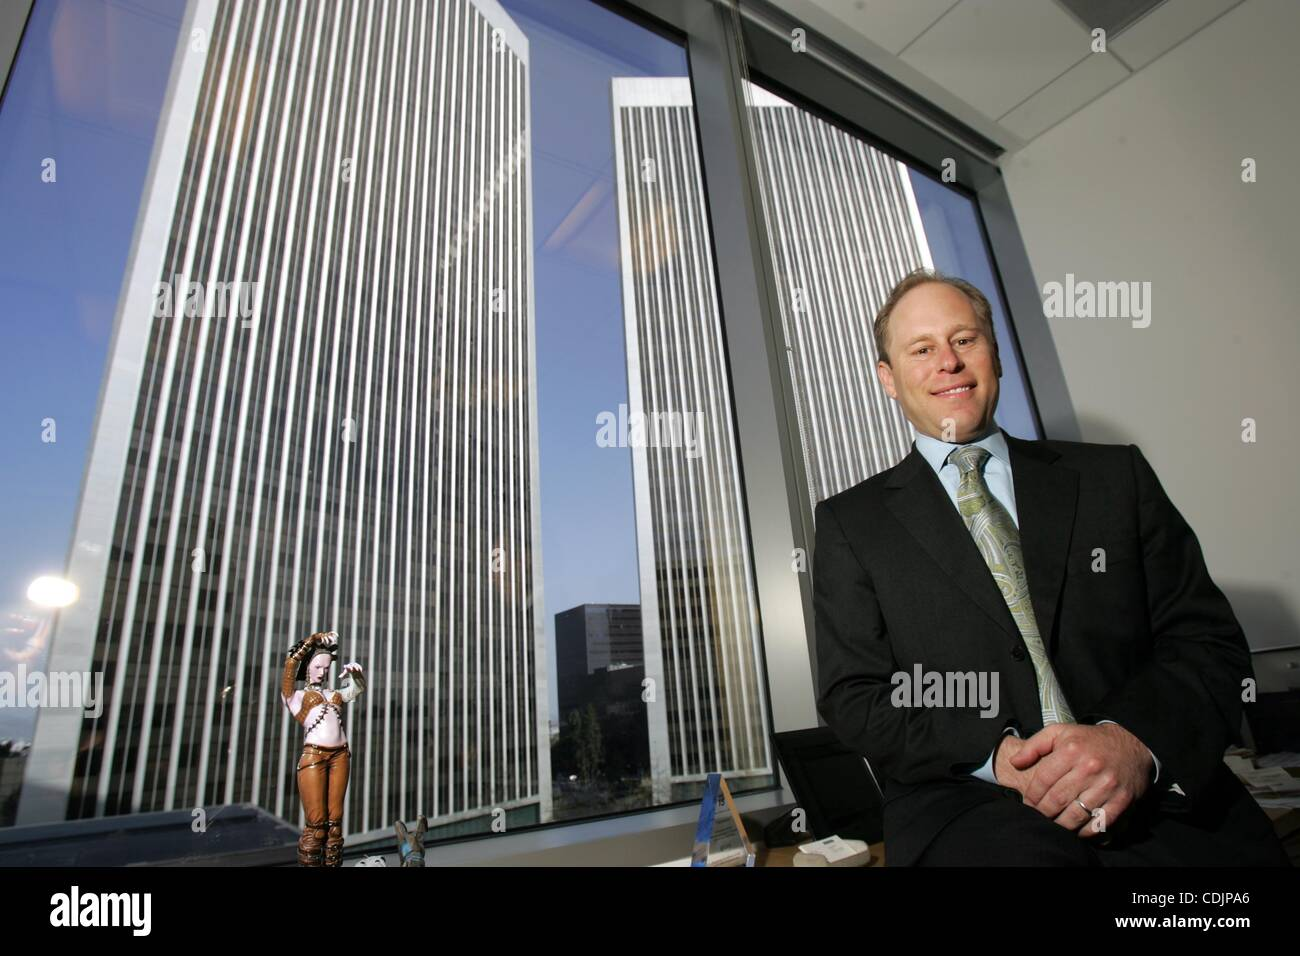 Mar 01, 2011 - Los Angeles, California, U.S. - JEFF COLVIN, senior vice president of Comerica Bank. (Credit Image: - Stock Image